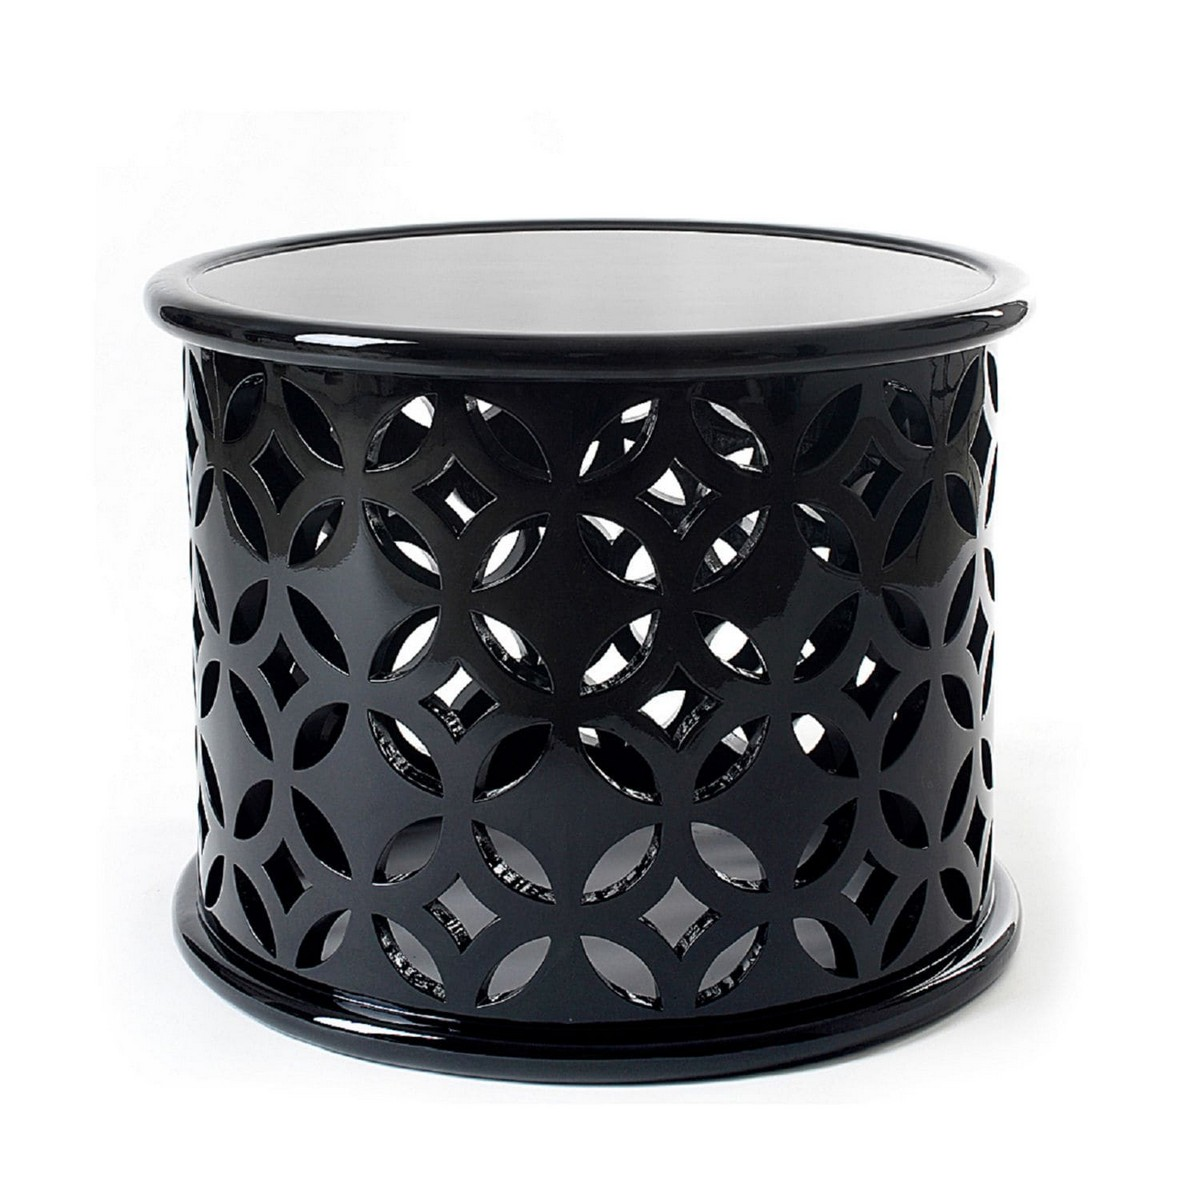 black and white side tables, side tables, black side tables, white side tables, living room, decor, detail, design, modern, luxury, combination, sophisticated,